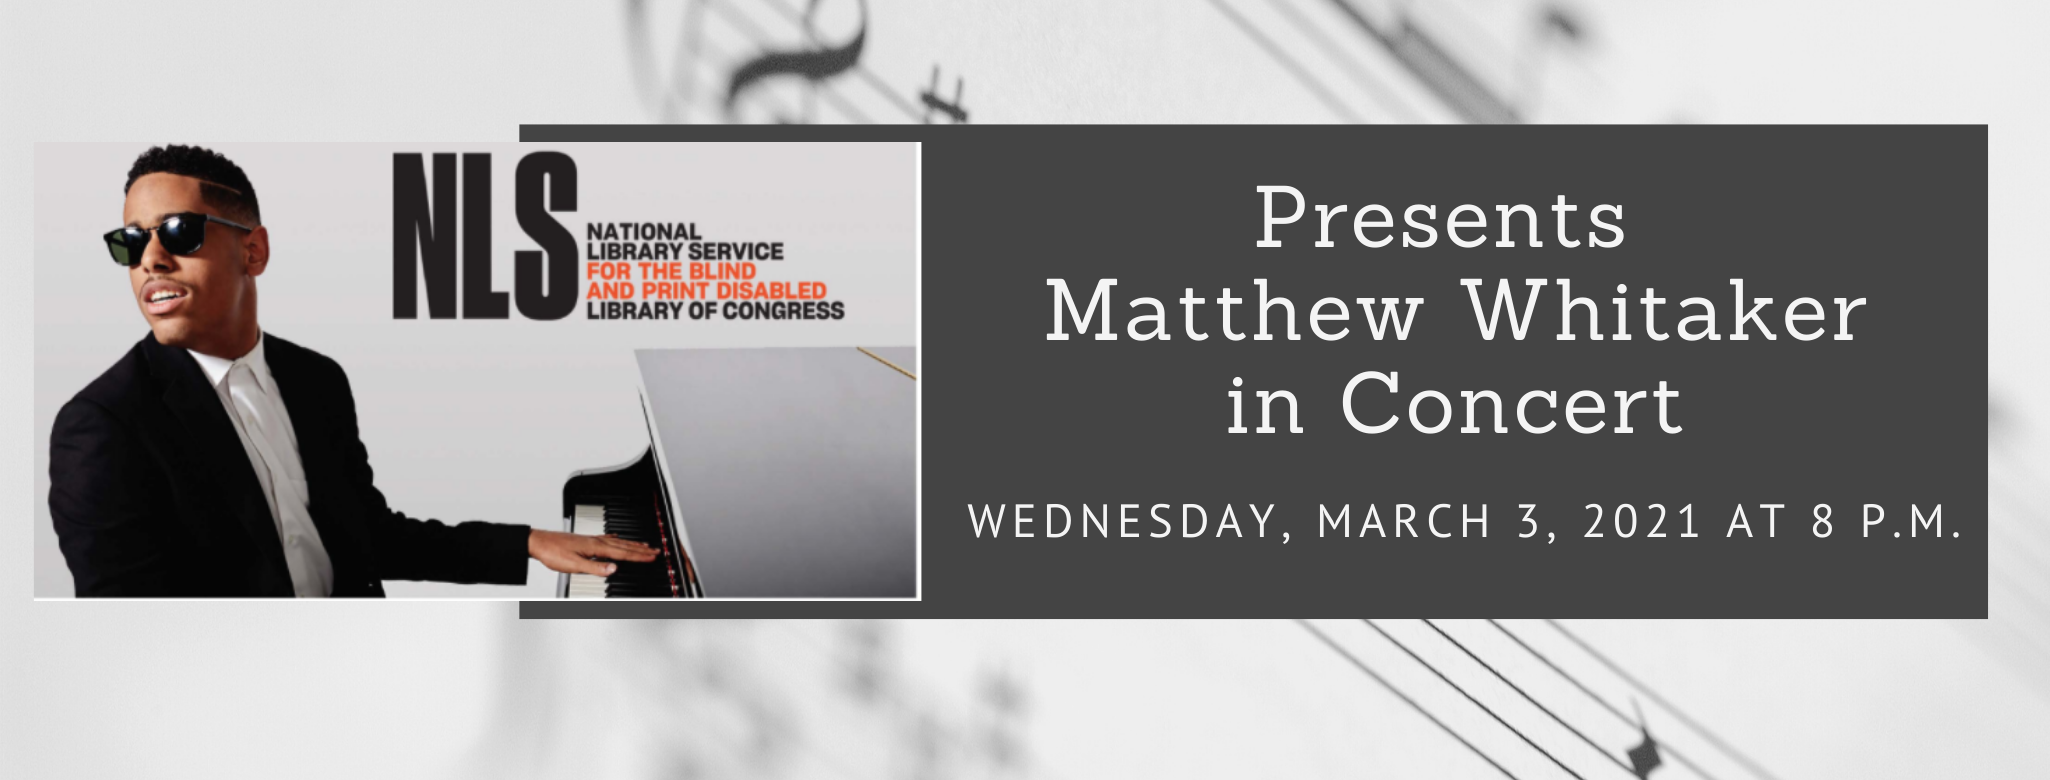 National Library Service for the Blind and Print Disabled Presents: Matthew Whitaker Concert Wednesday March 3, 2021 8 p.m.